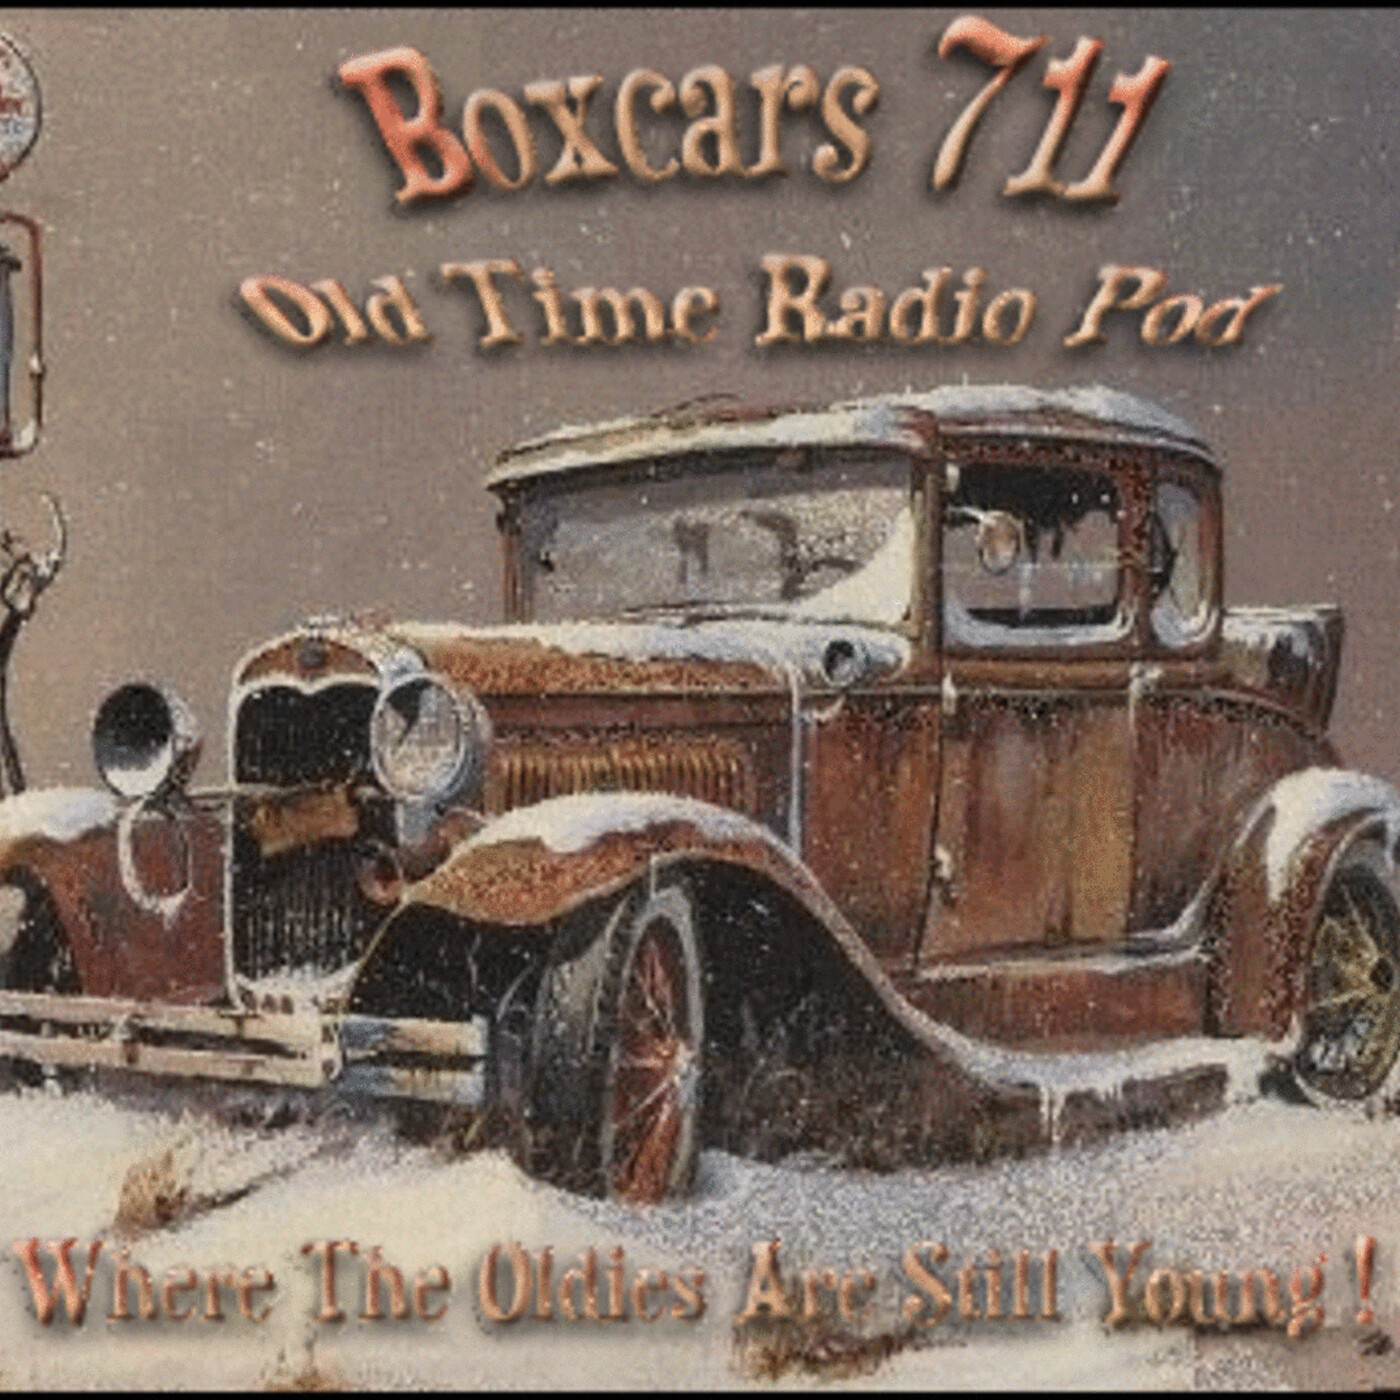 """Boxcars711 Overnight Western """"Frontier Town"""" - Bullets For Boothill (05-29-53)"""